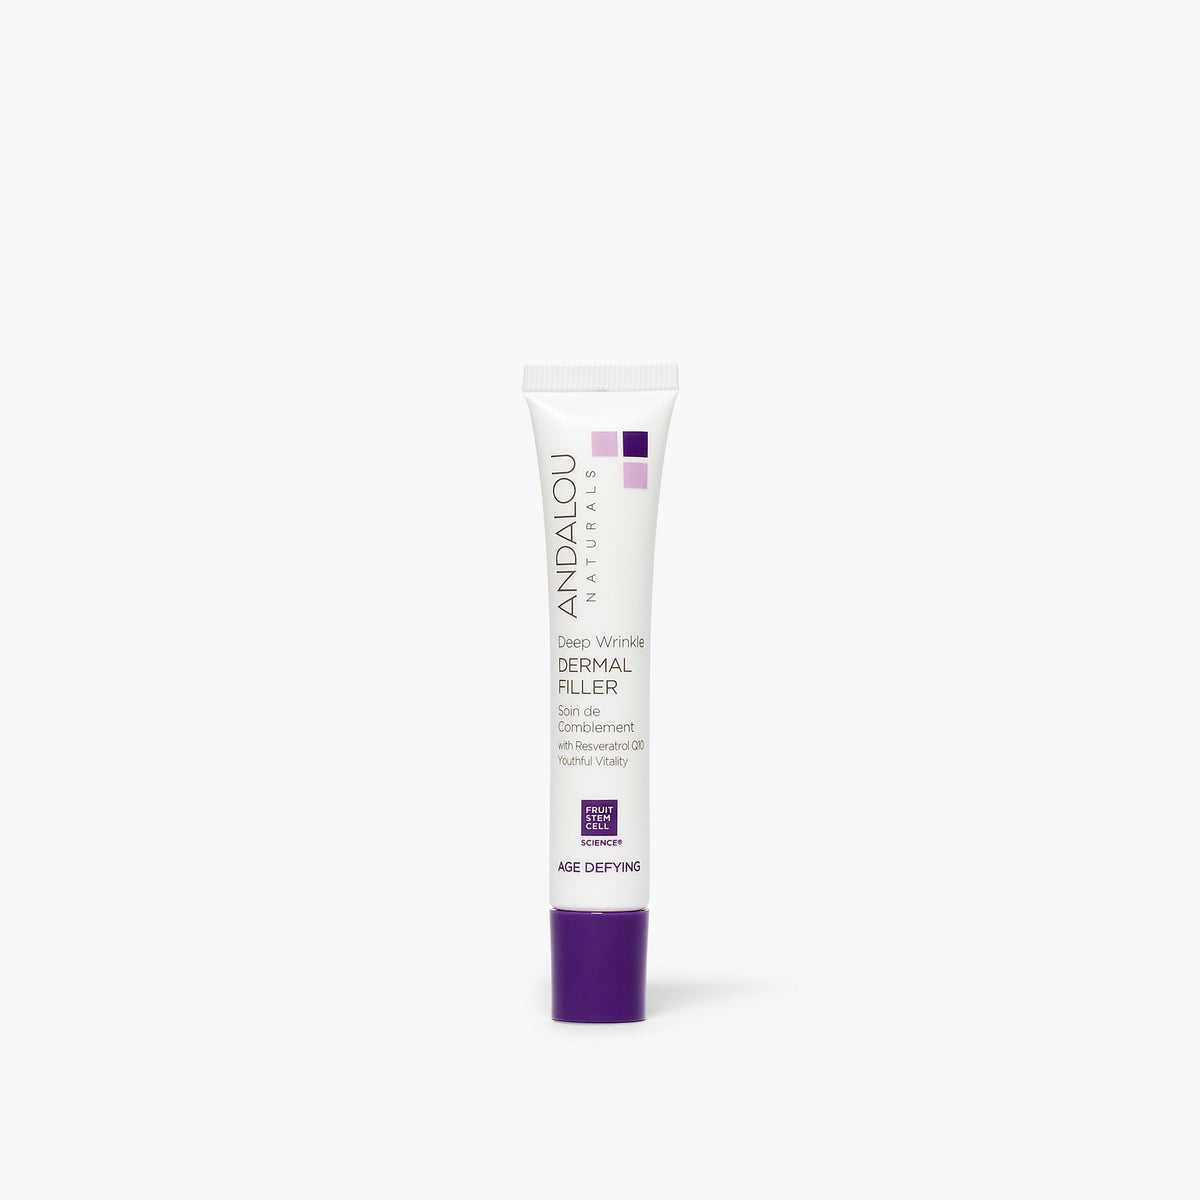 Age Defying Deep Wrinkle Dermal Filler - Andalou Naturals US